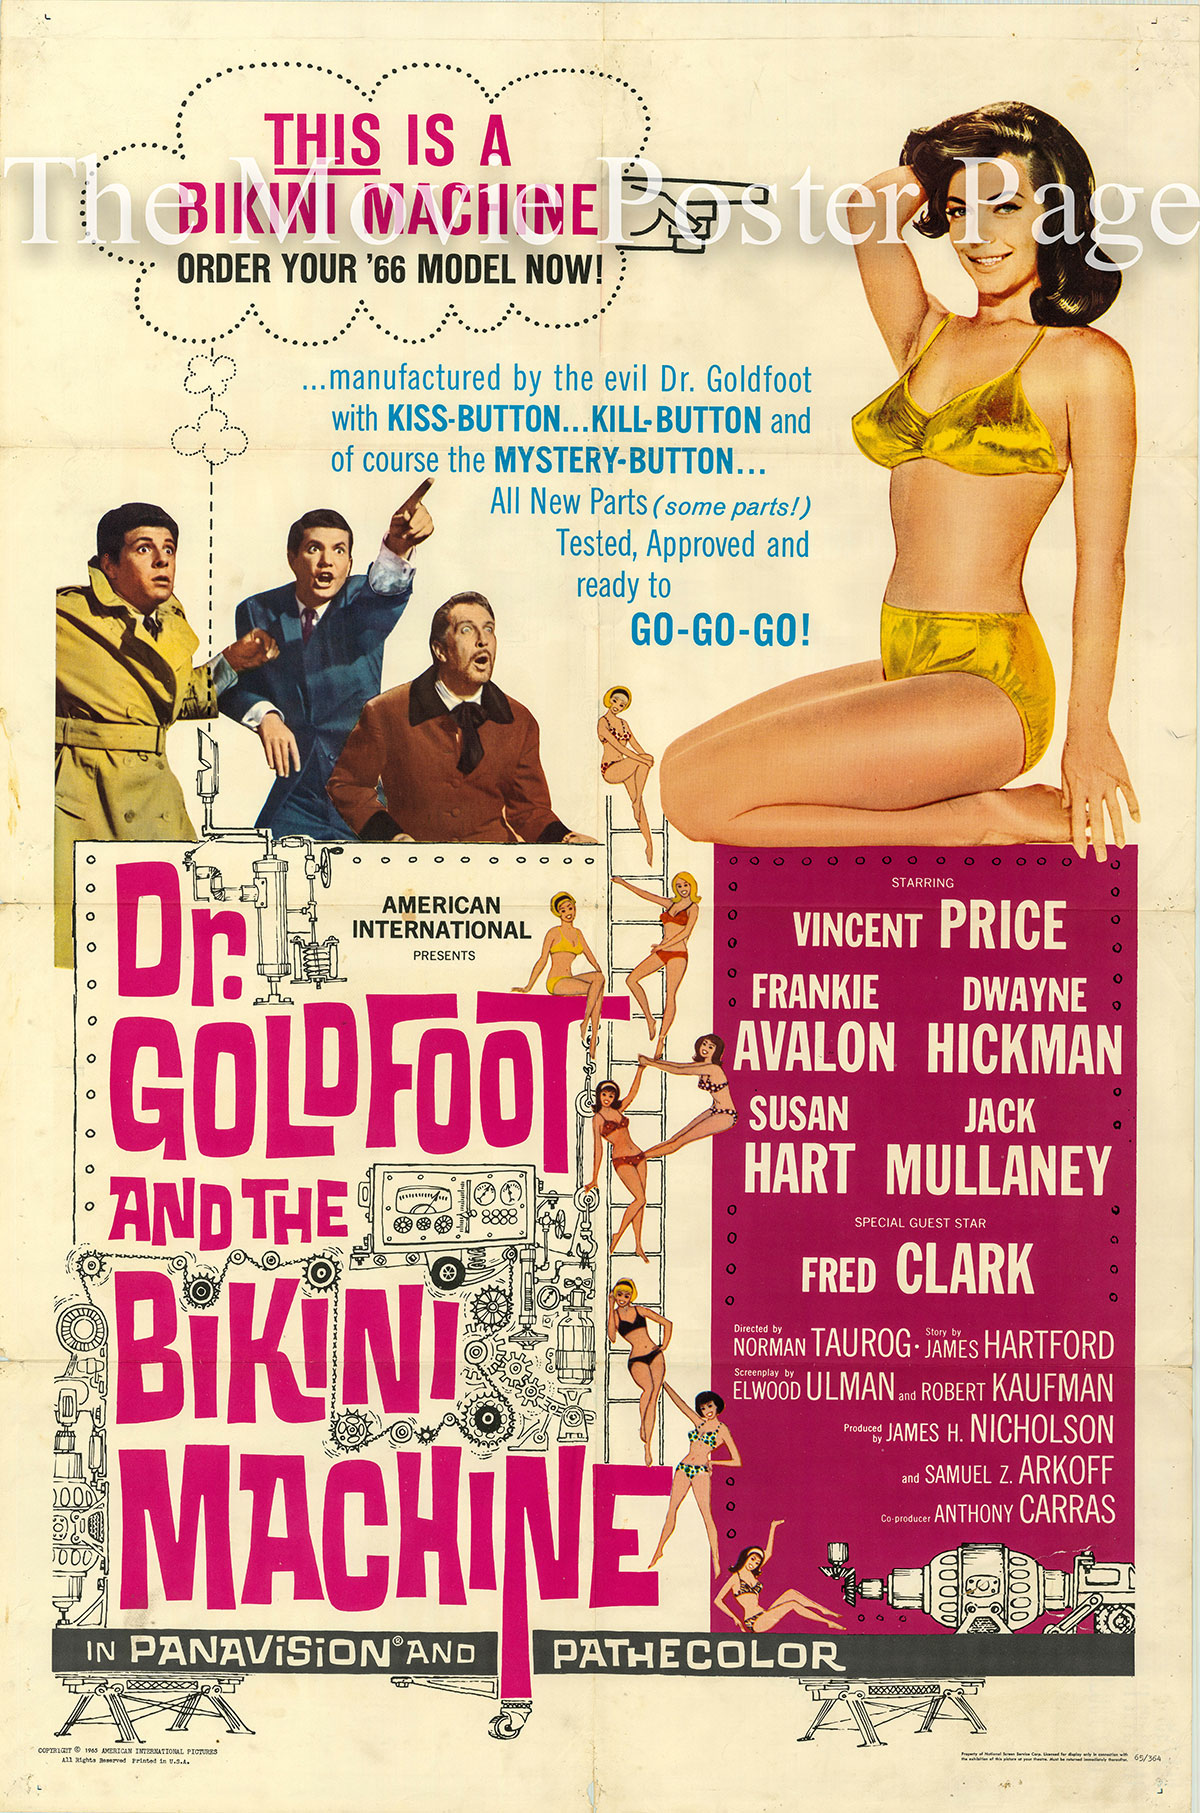 Pictured is a US one-sheet poster for the 1965 Norman Taurog film Dr. Goldfoot and the Bikini Machine starring Vincent Price as Dr. Goldfoot.